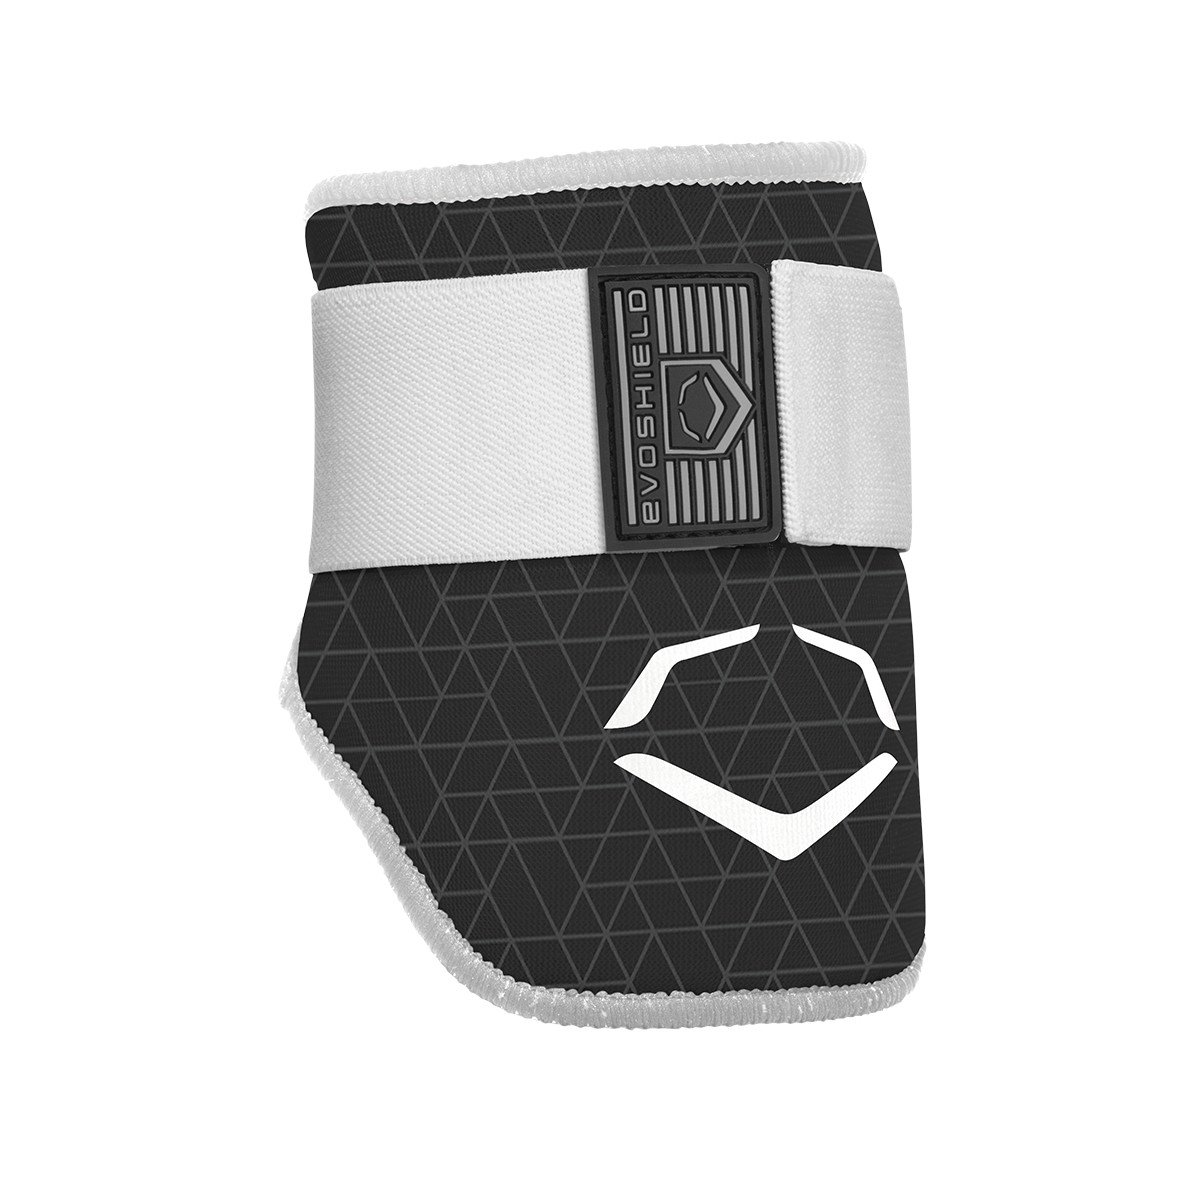 EvoShield EvoCharge Batter's Elbow Guard - Adult, Black